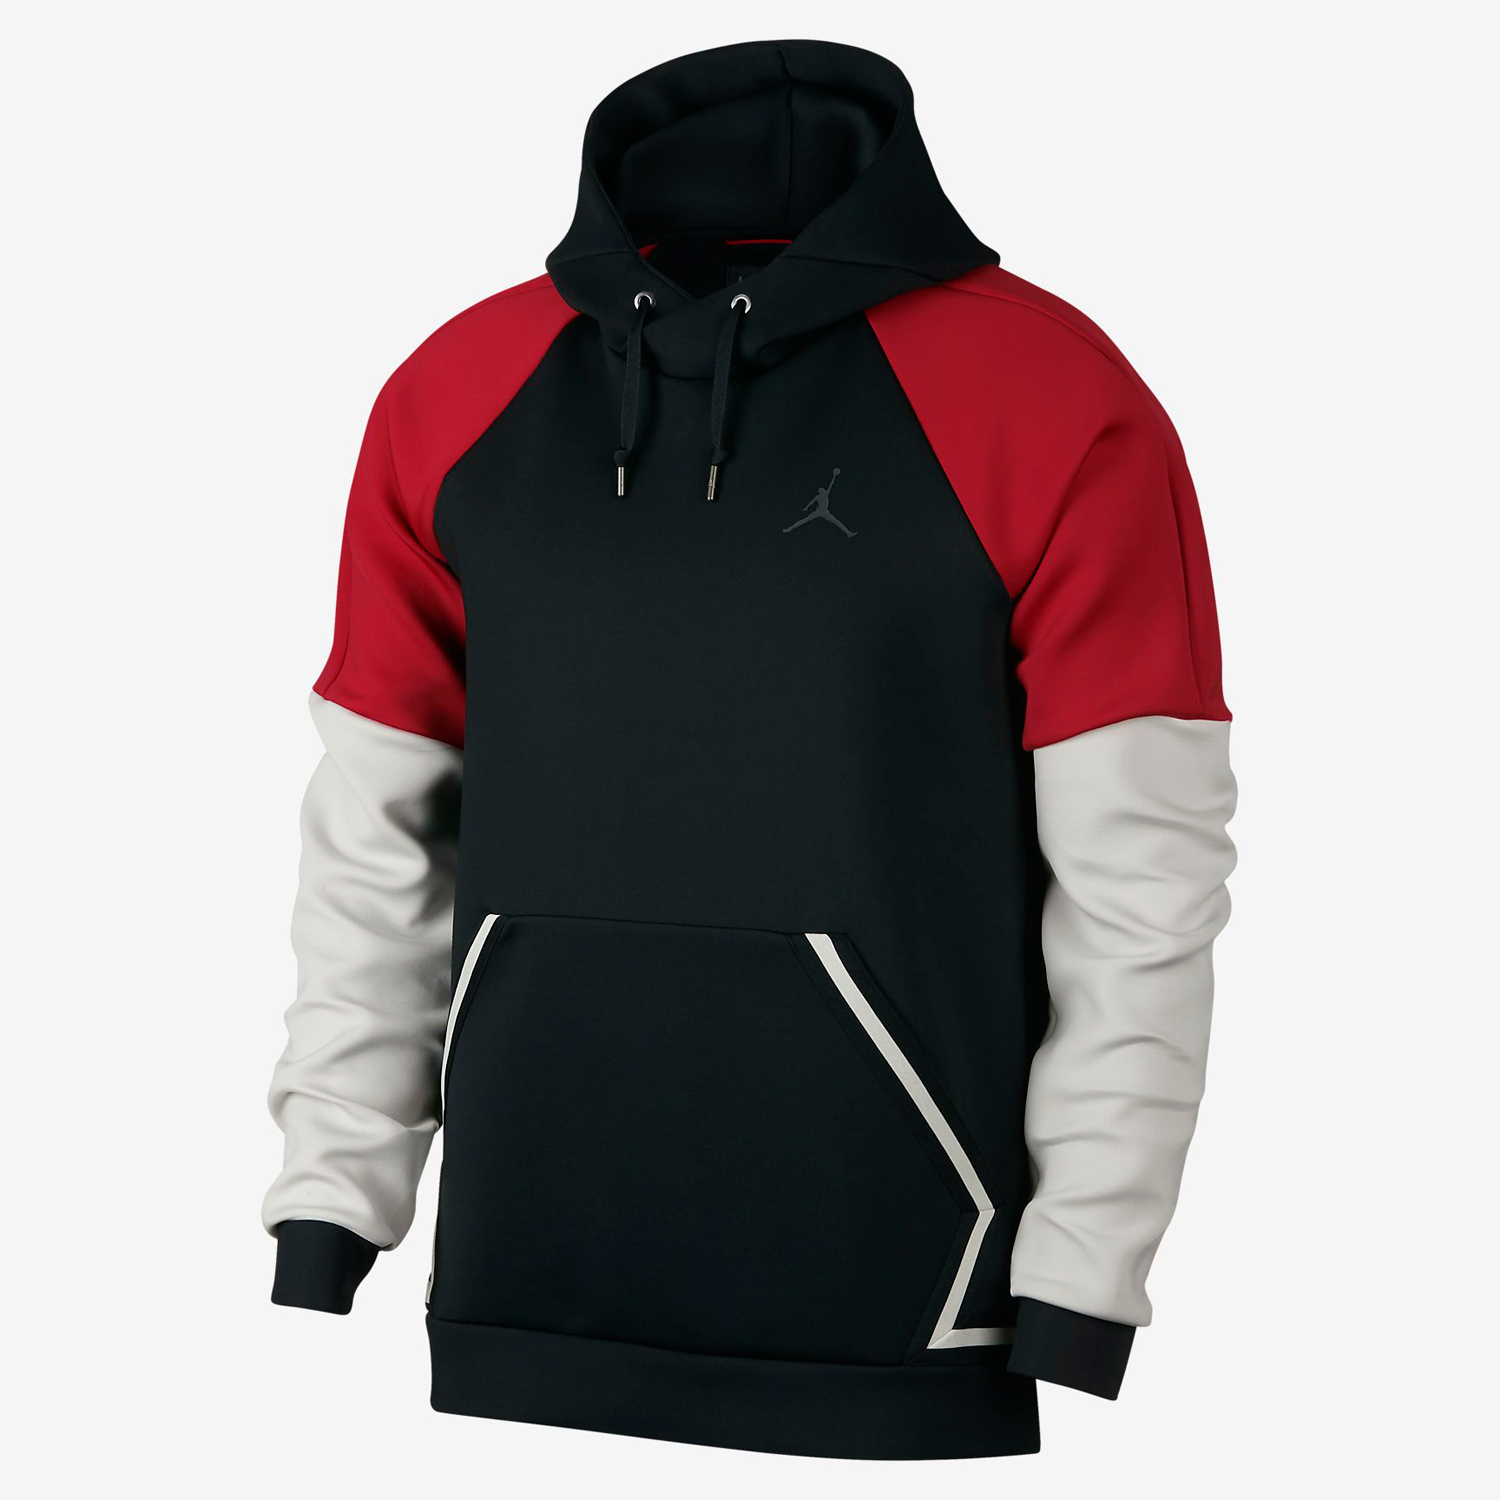 jordan-13-he-got-game-jordan-hoodie-to-match-1